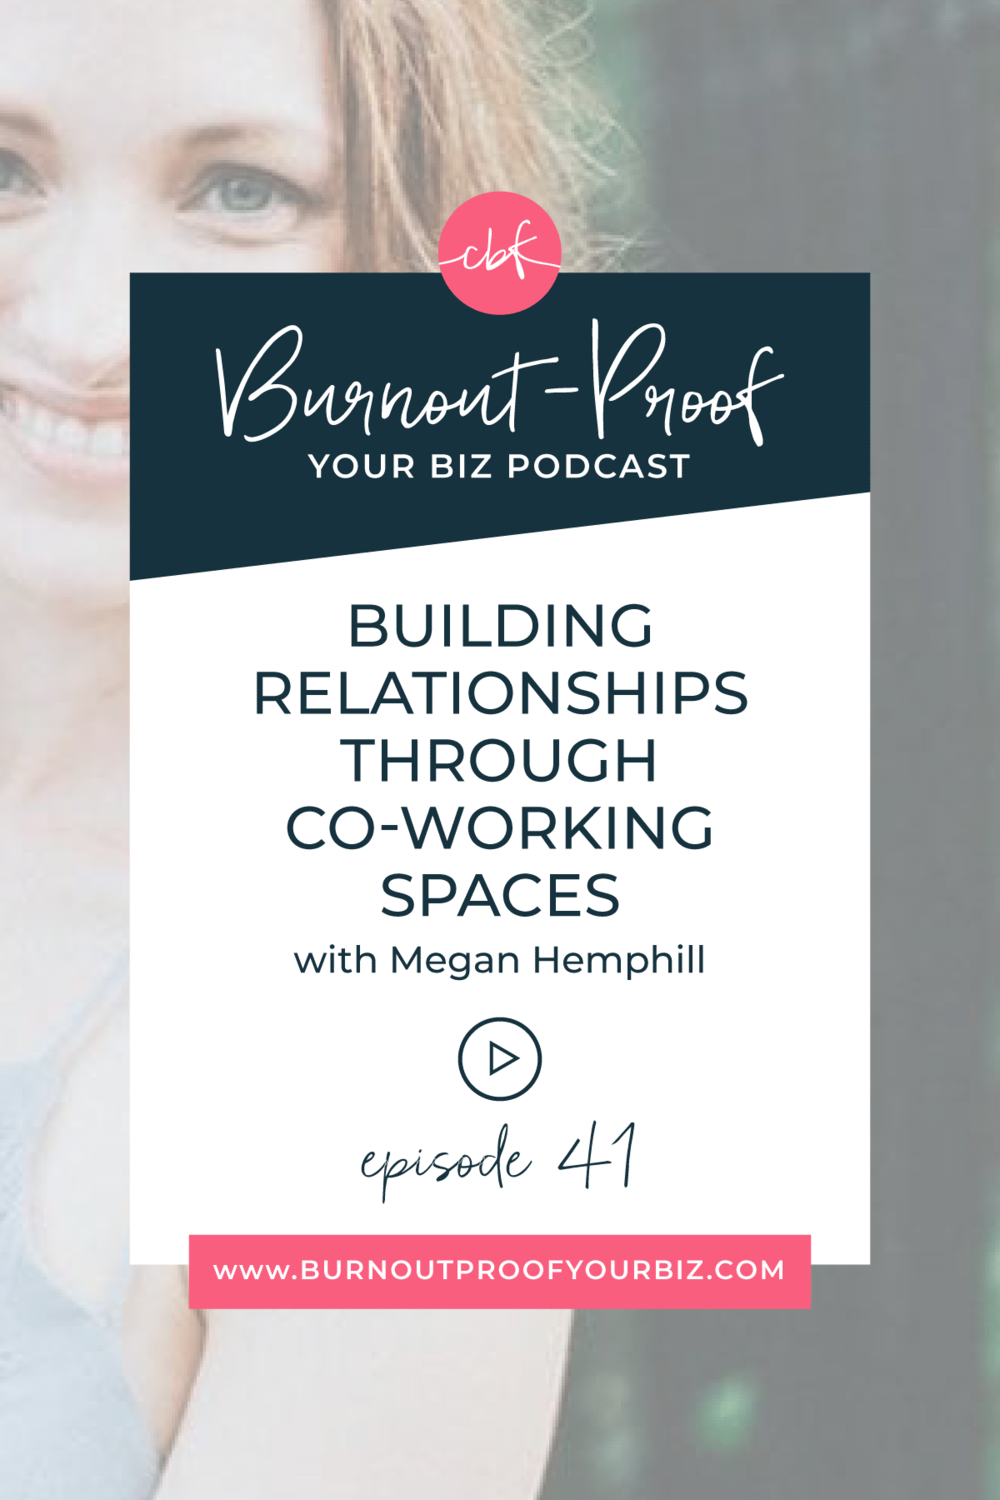 Burnout-Proof Your Biz Podcast with Chelsea B Foster | Episode 041 - Building Relationships through Co-Working Spaces with Megan Hemphill of Firebrand Collective | Learn how to run your biz and live your dream life on your own terms without the fear of burnout. ||| Co-working for creatives | Working from Home | Networking for creatives | Co-working spaces | Avoiding Boundaries | Boundaries for creative business owners | Productive Entrepreneur | Productivity |